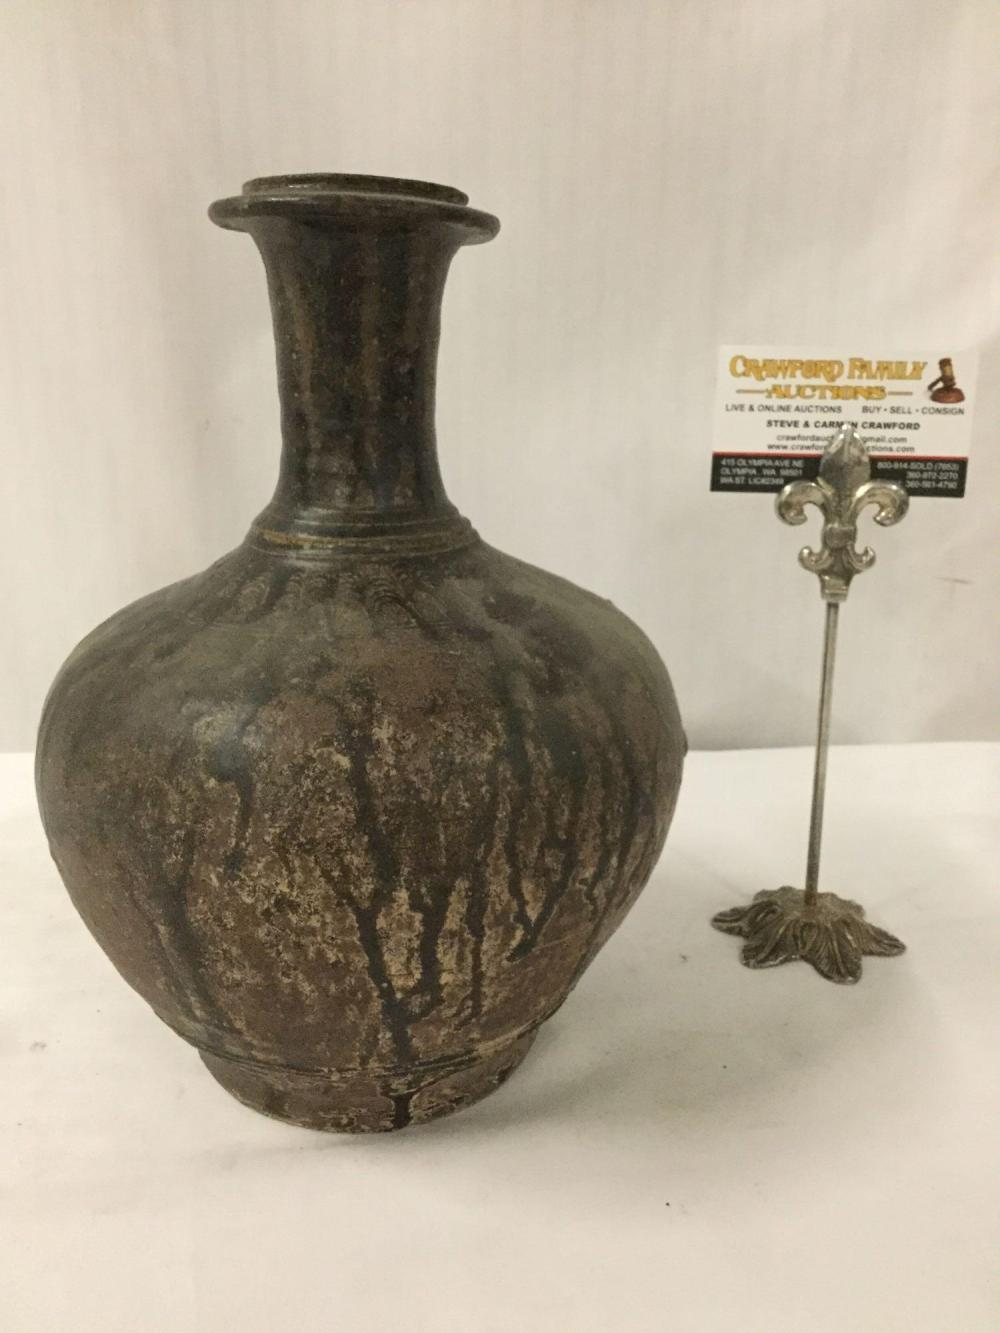 Circa 15th century Earthenware vase from Sankampaeng region of Thailand - appraised @ $400